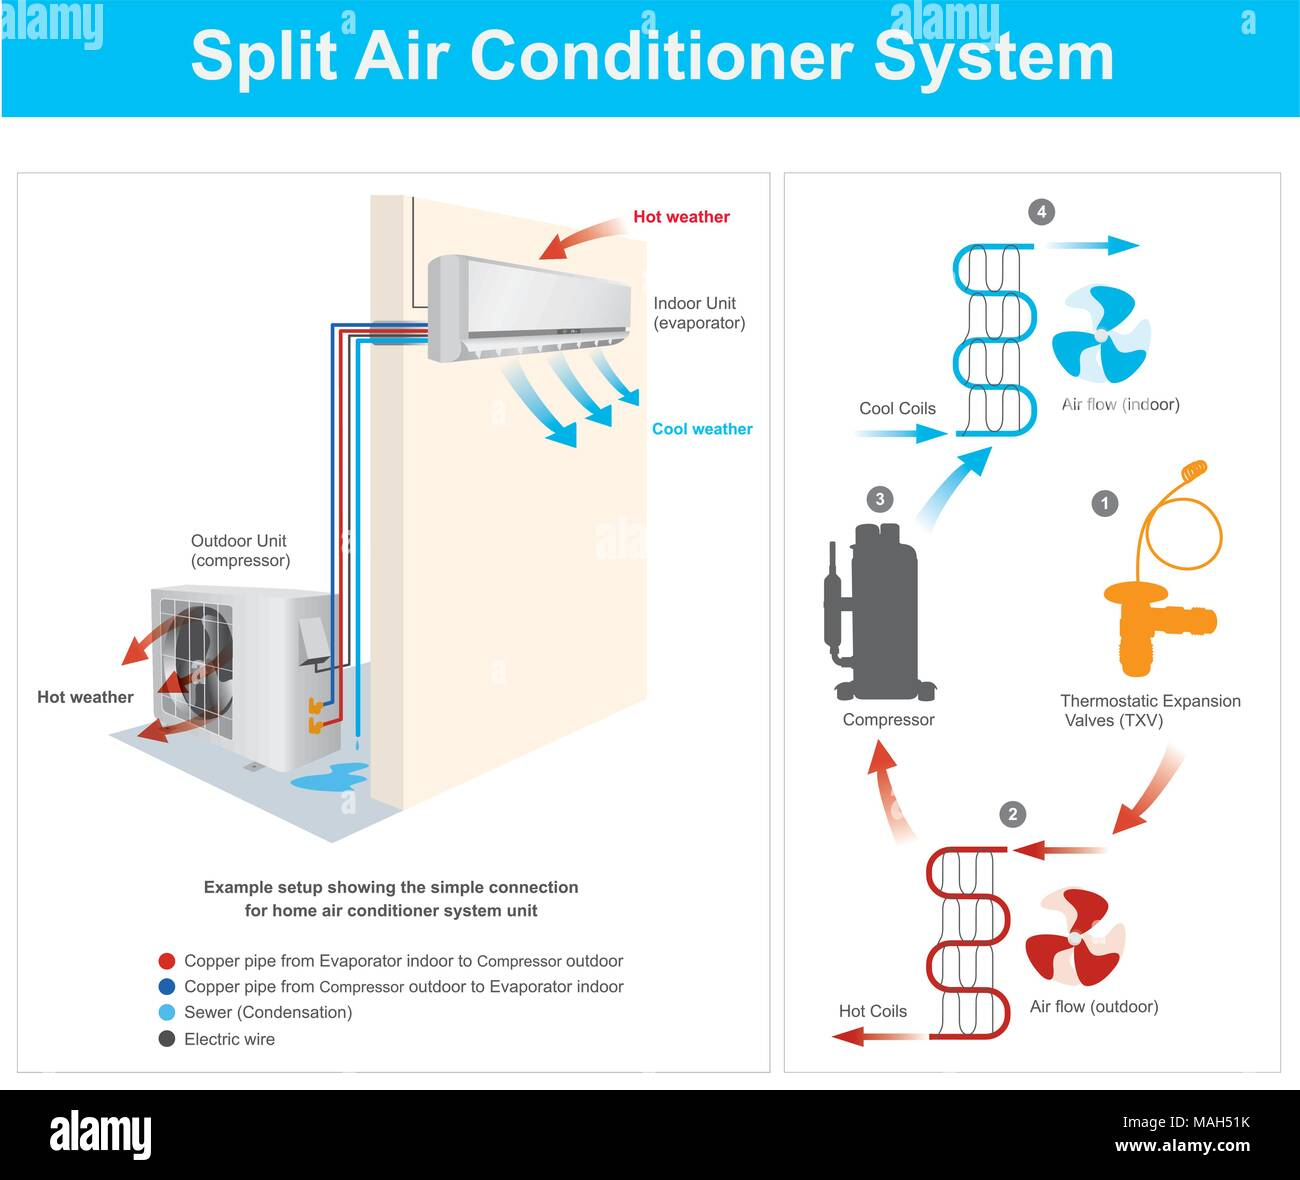 home compressor wiring diagram example setup showing the simple connection for home air  setup showing the simple connection